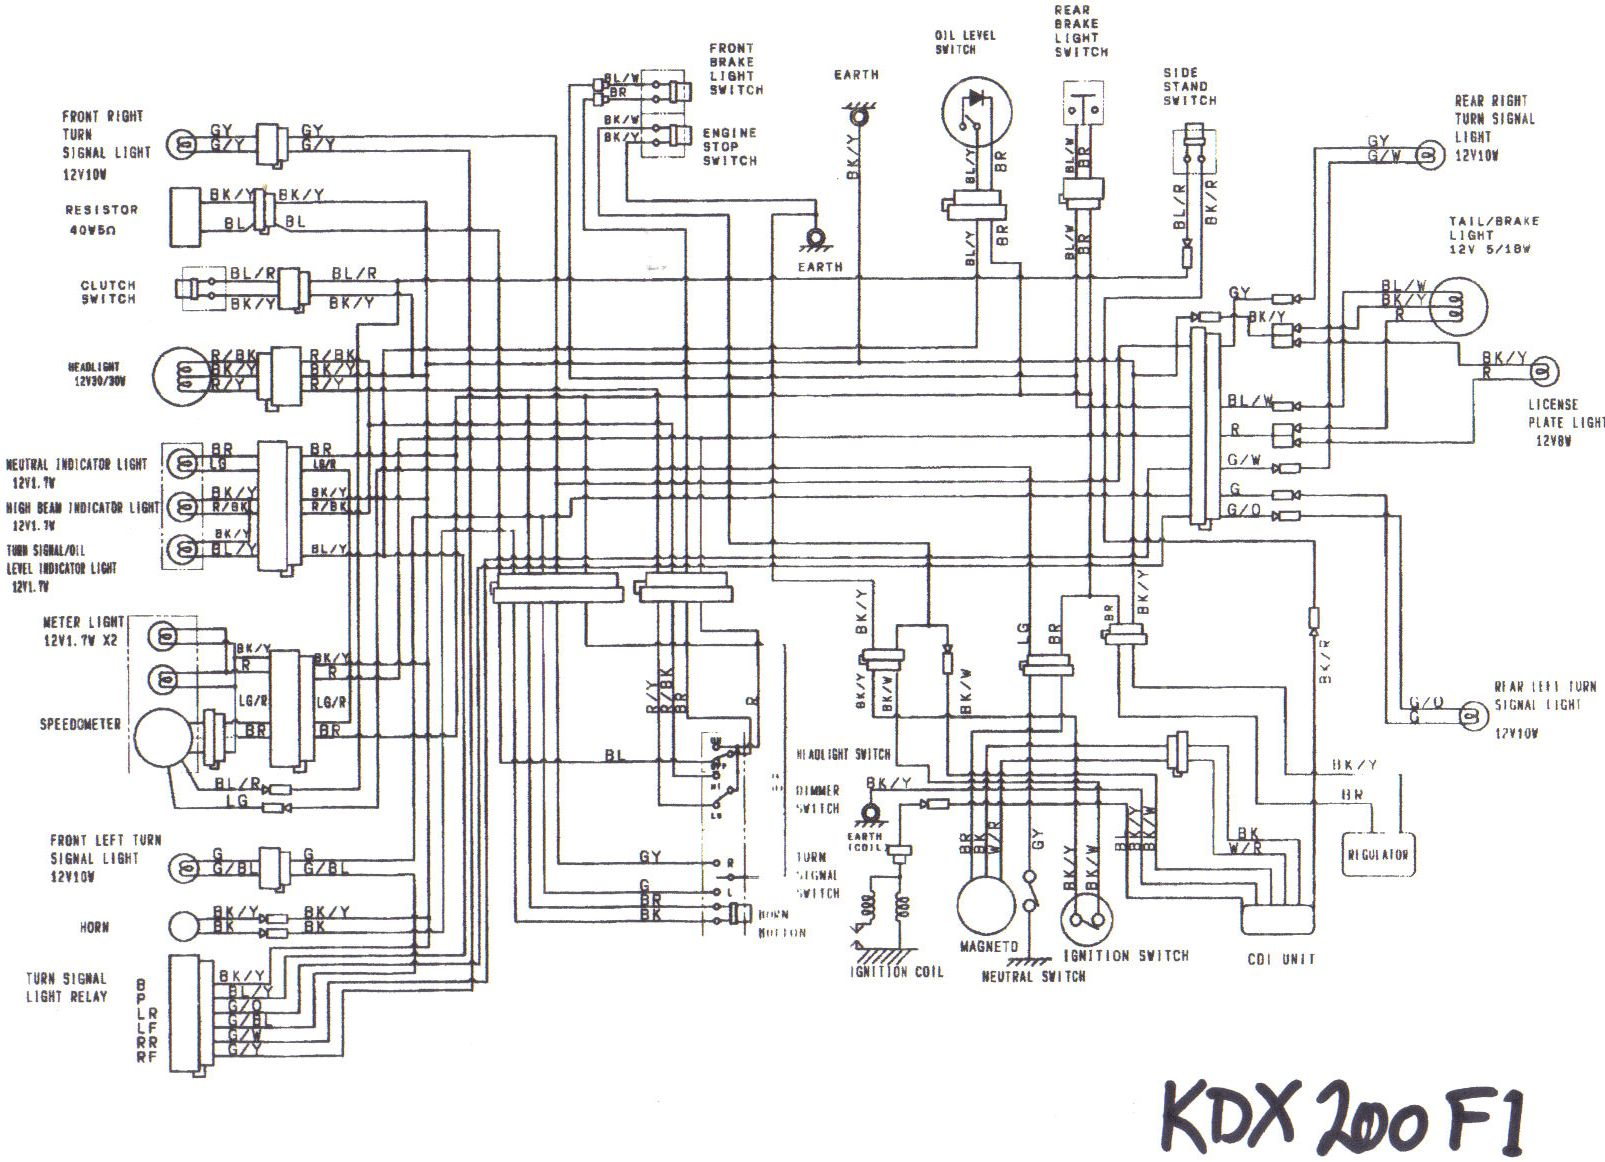 1997 Vulcan Wiring Diagram - Schematics Online on